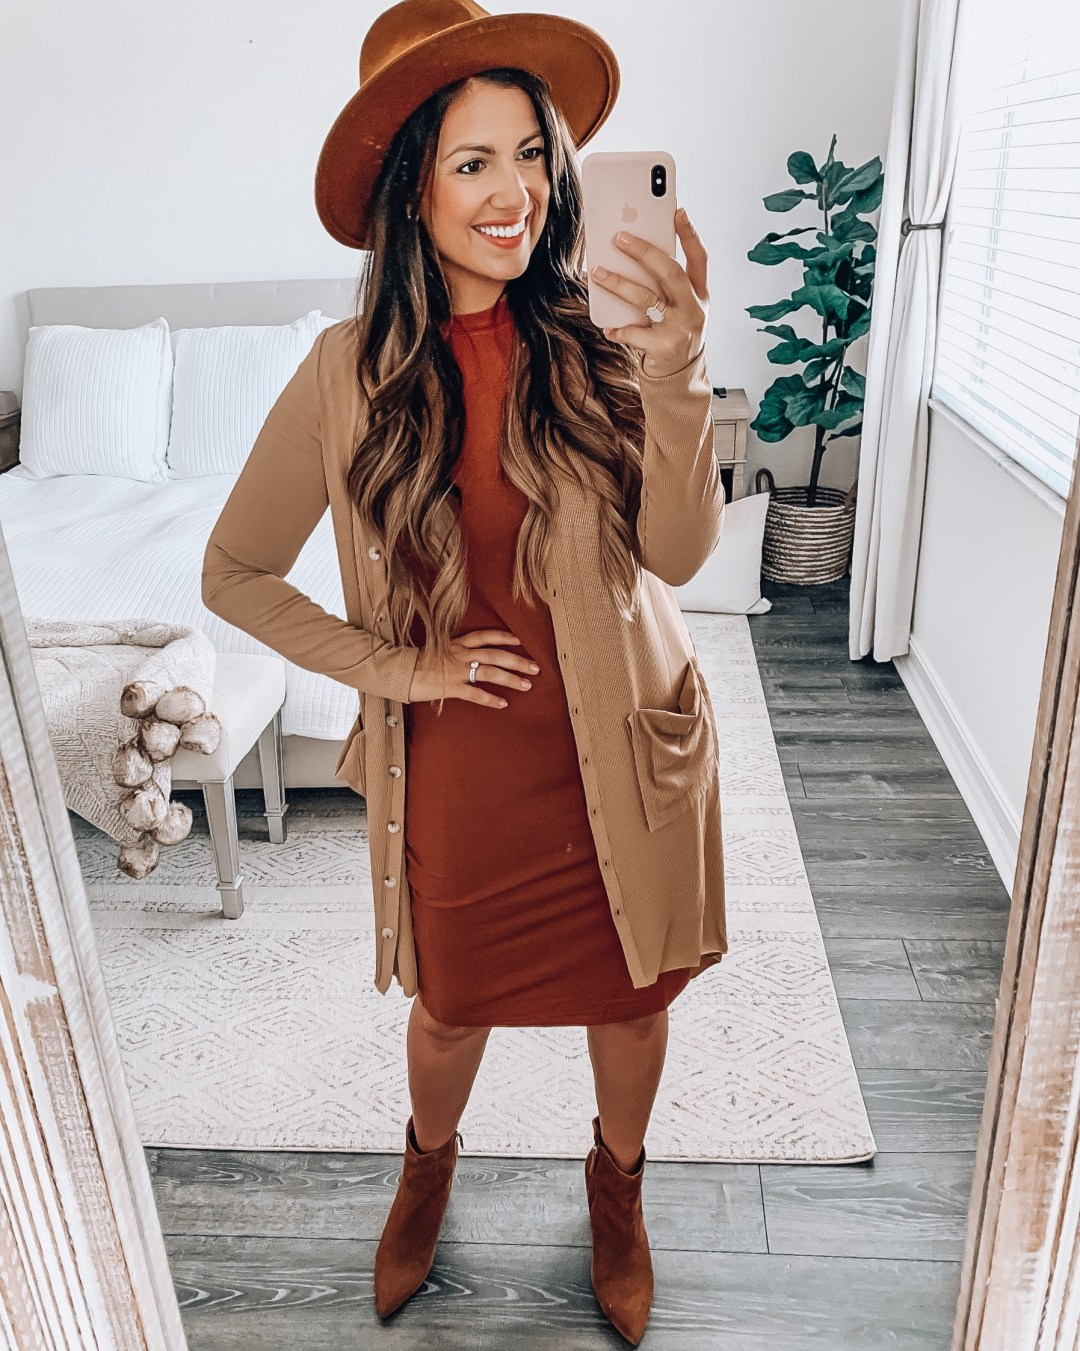 Amazon Fashion bodycon dress and cardigan, Amazon fashion fedora hat